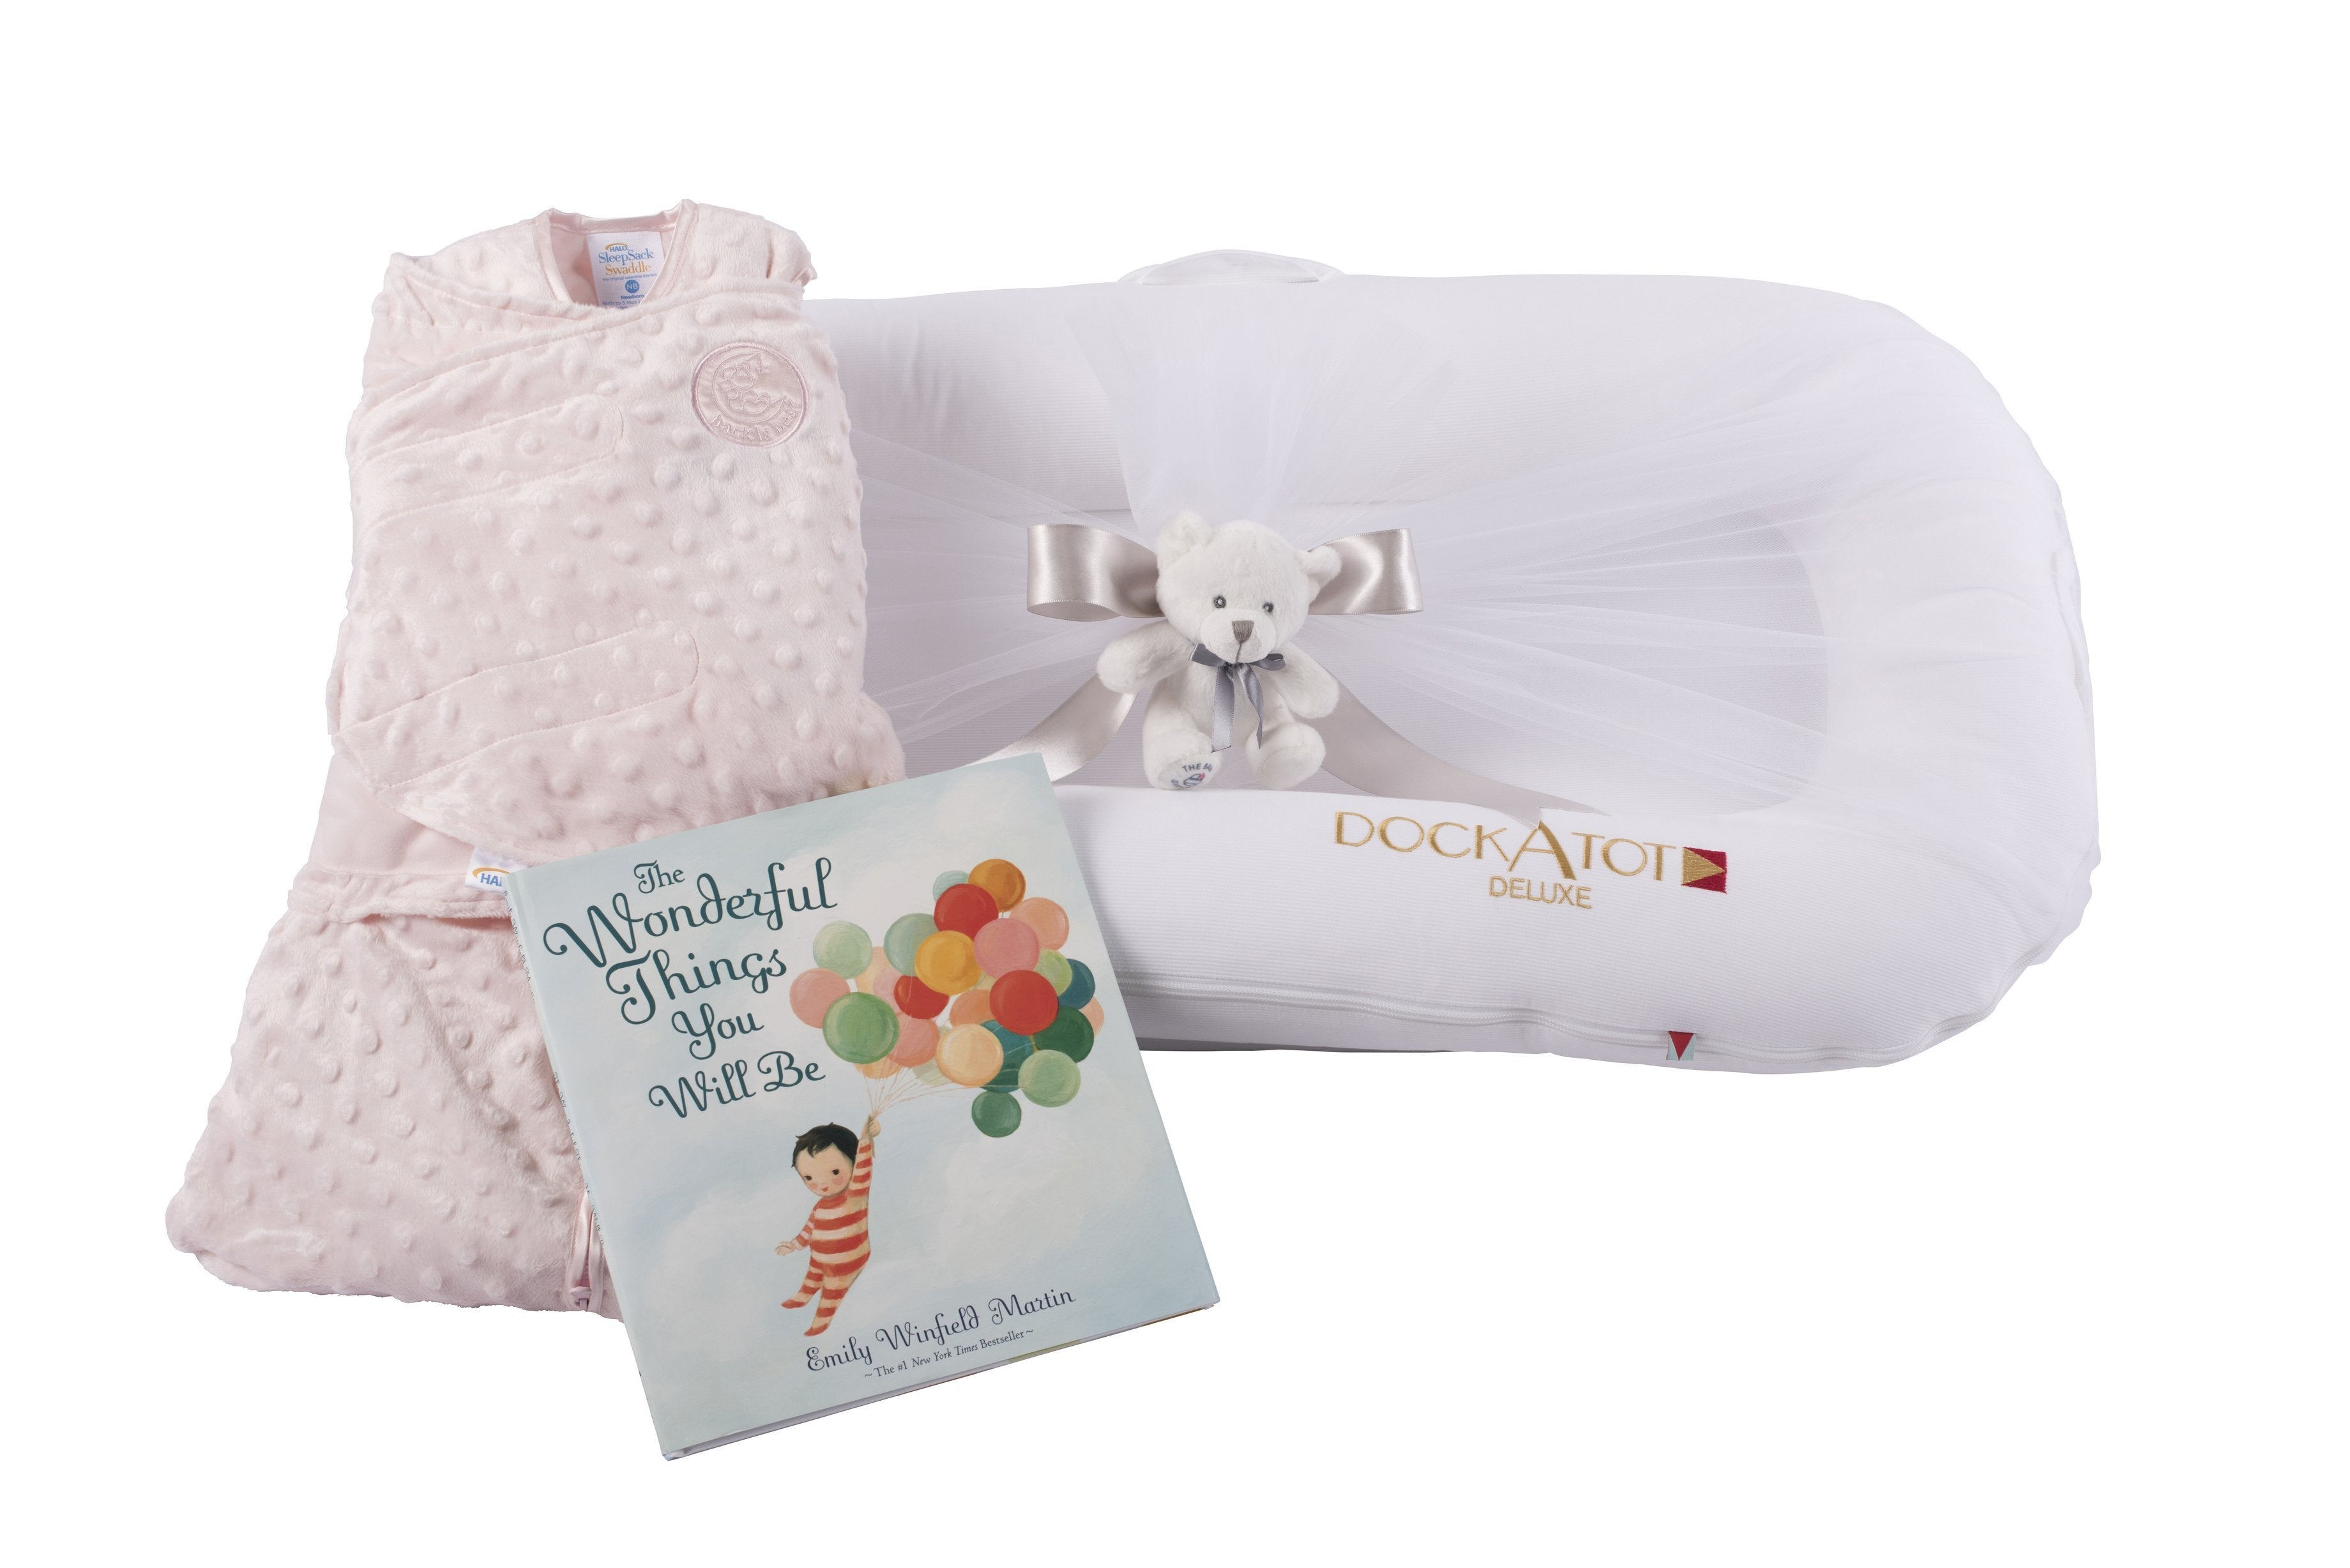 Dockatot baby girl gift set the dream gift the baby gift box dockatot baby shower gift for baby girl personalization available by the baby gift box negle Images